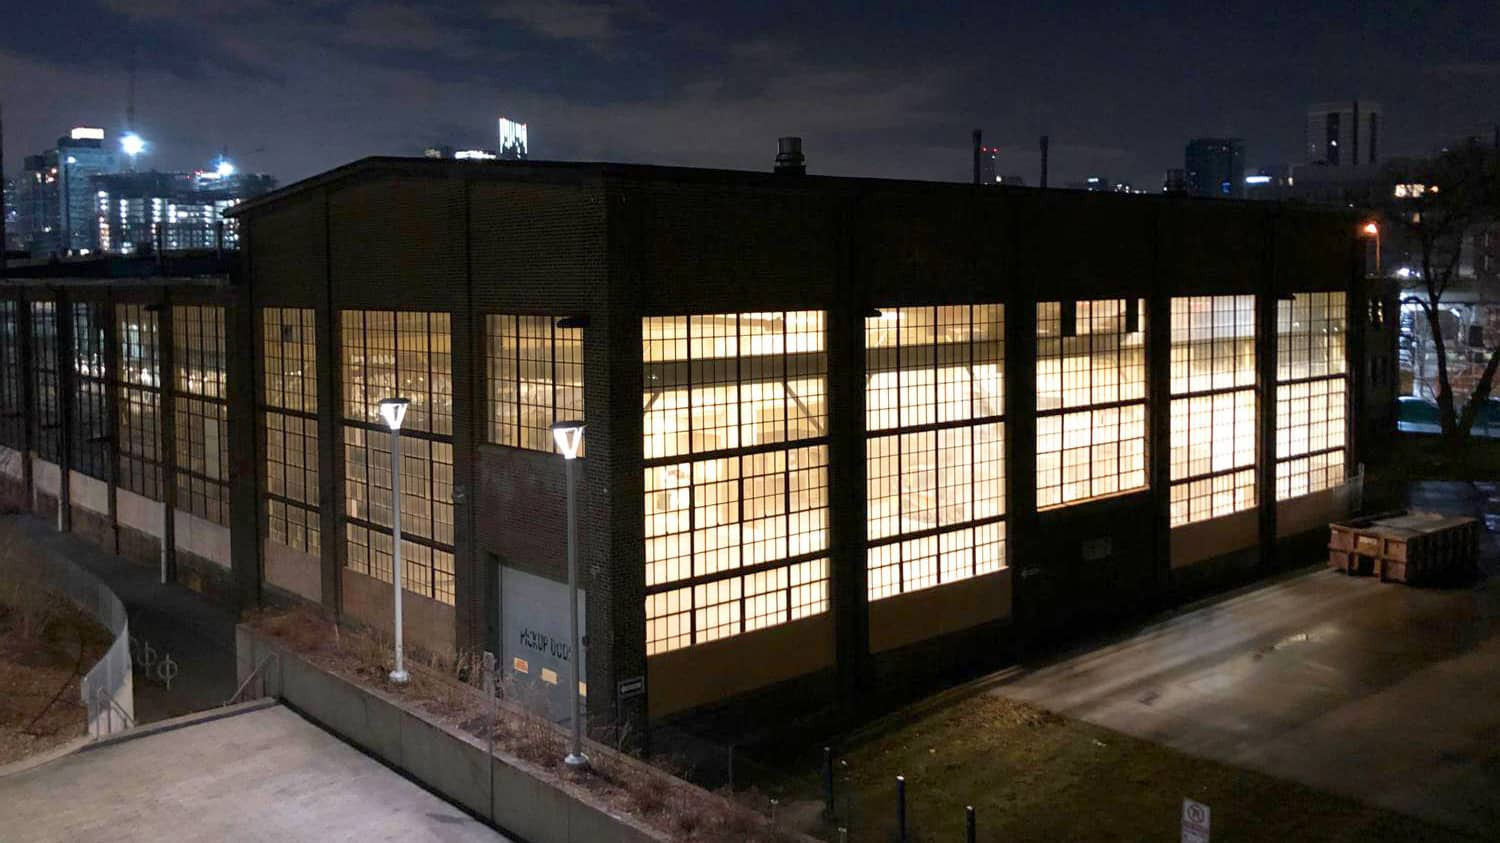 The Foundry at night